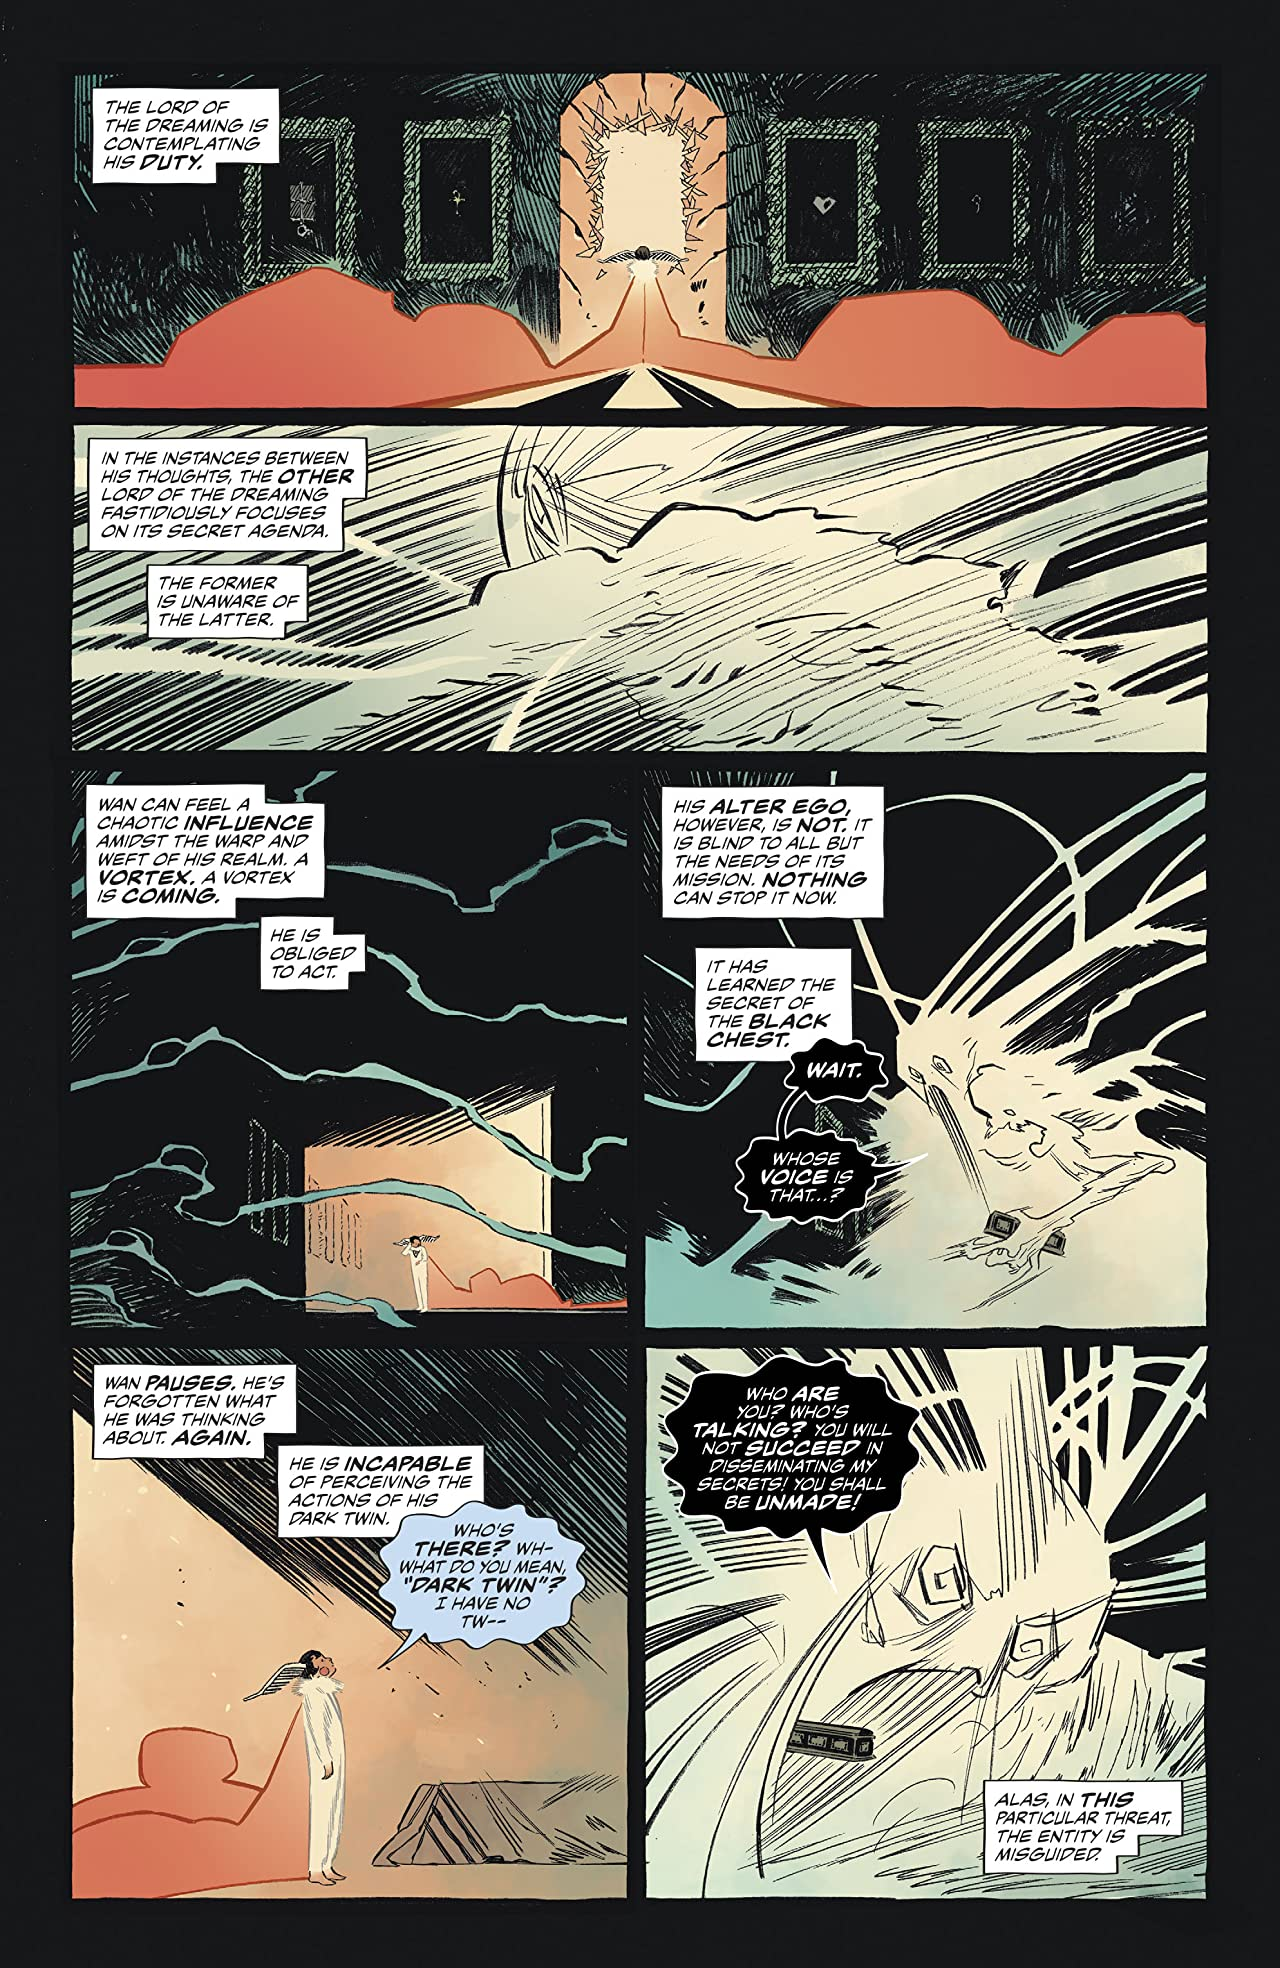 The Dreaming (2018-) #19